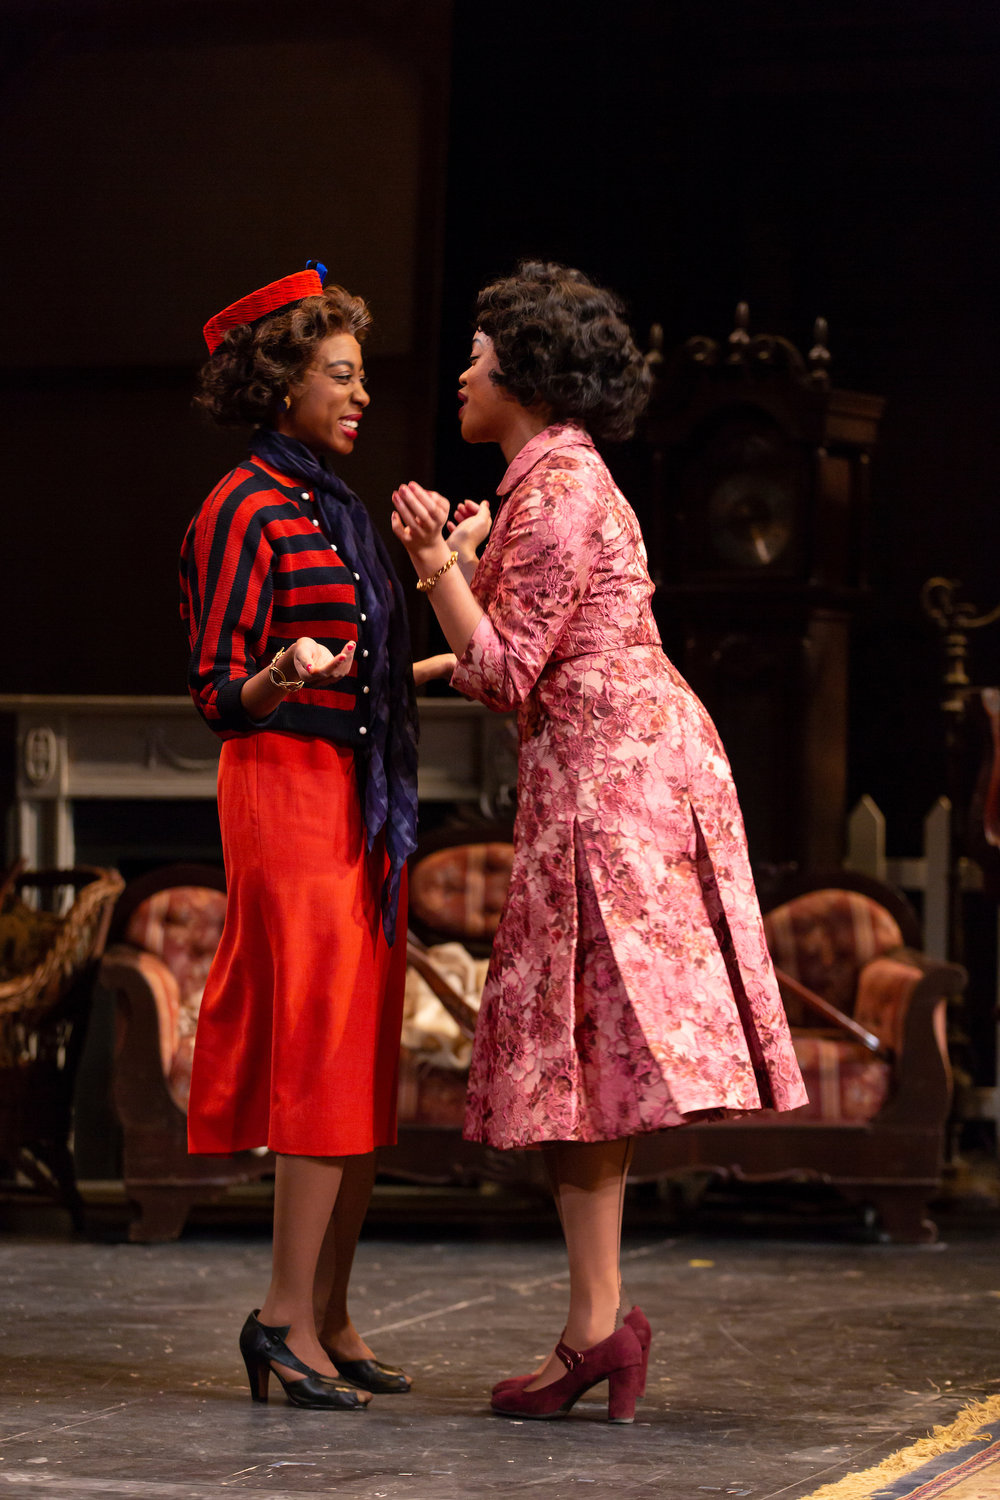 Millie Davis (Amandla Jahava), Wiletta Mayer (Ciara Monique McMillian)